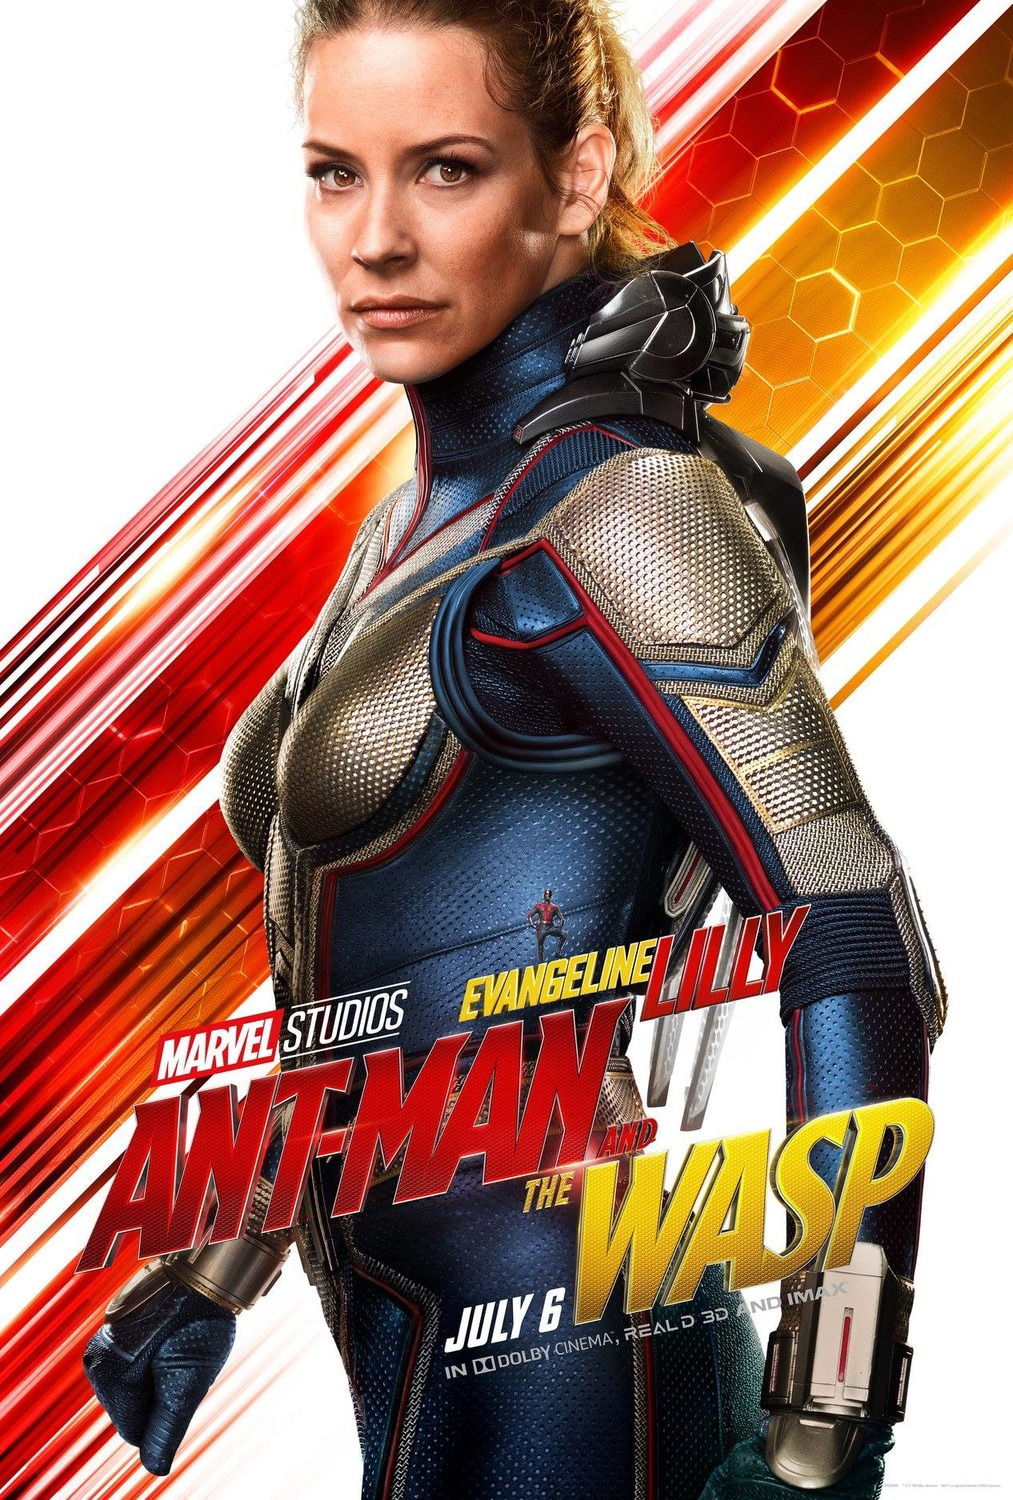 antman_and_the_wasp_ver5_xlg.jpg